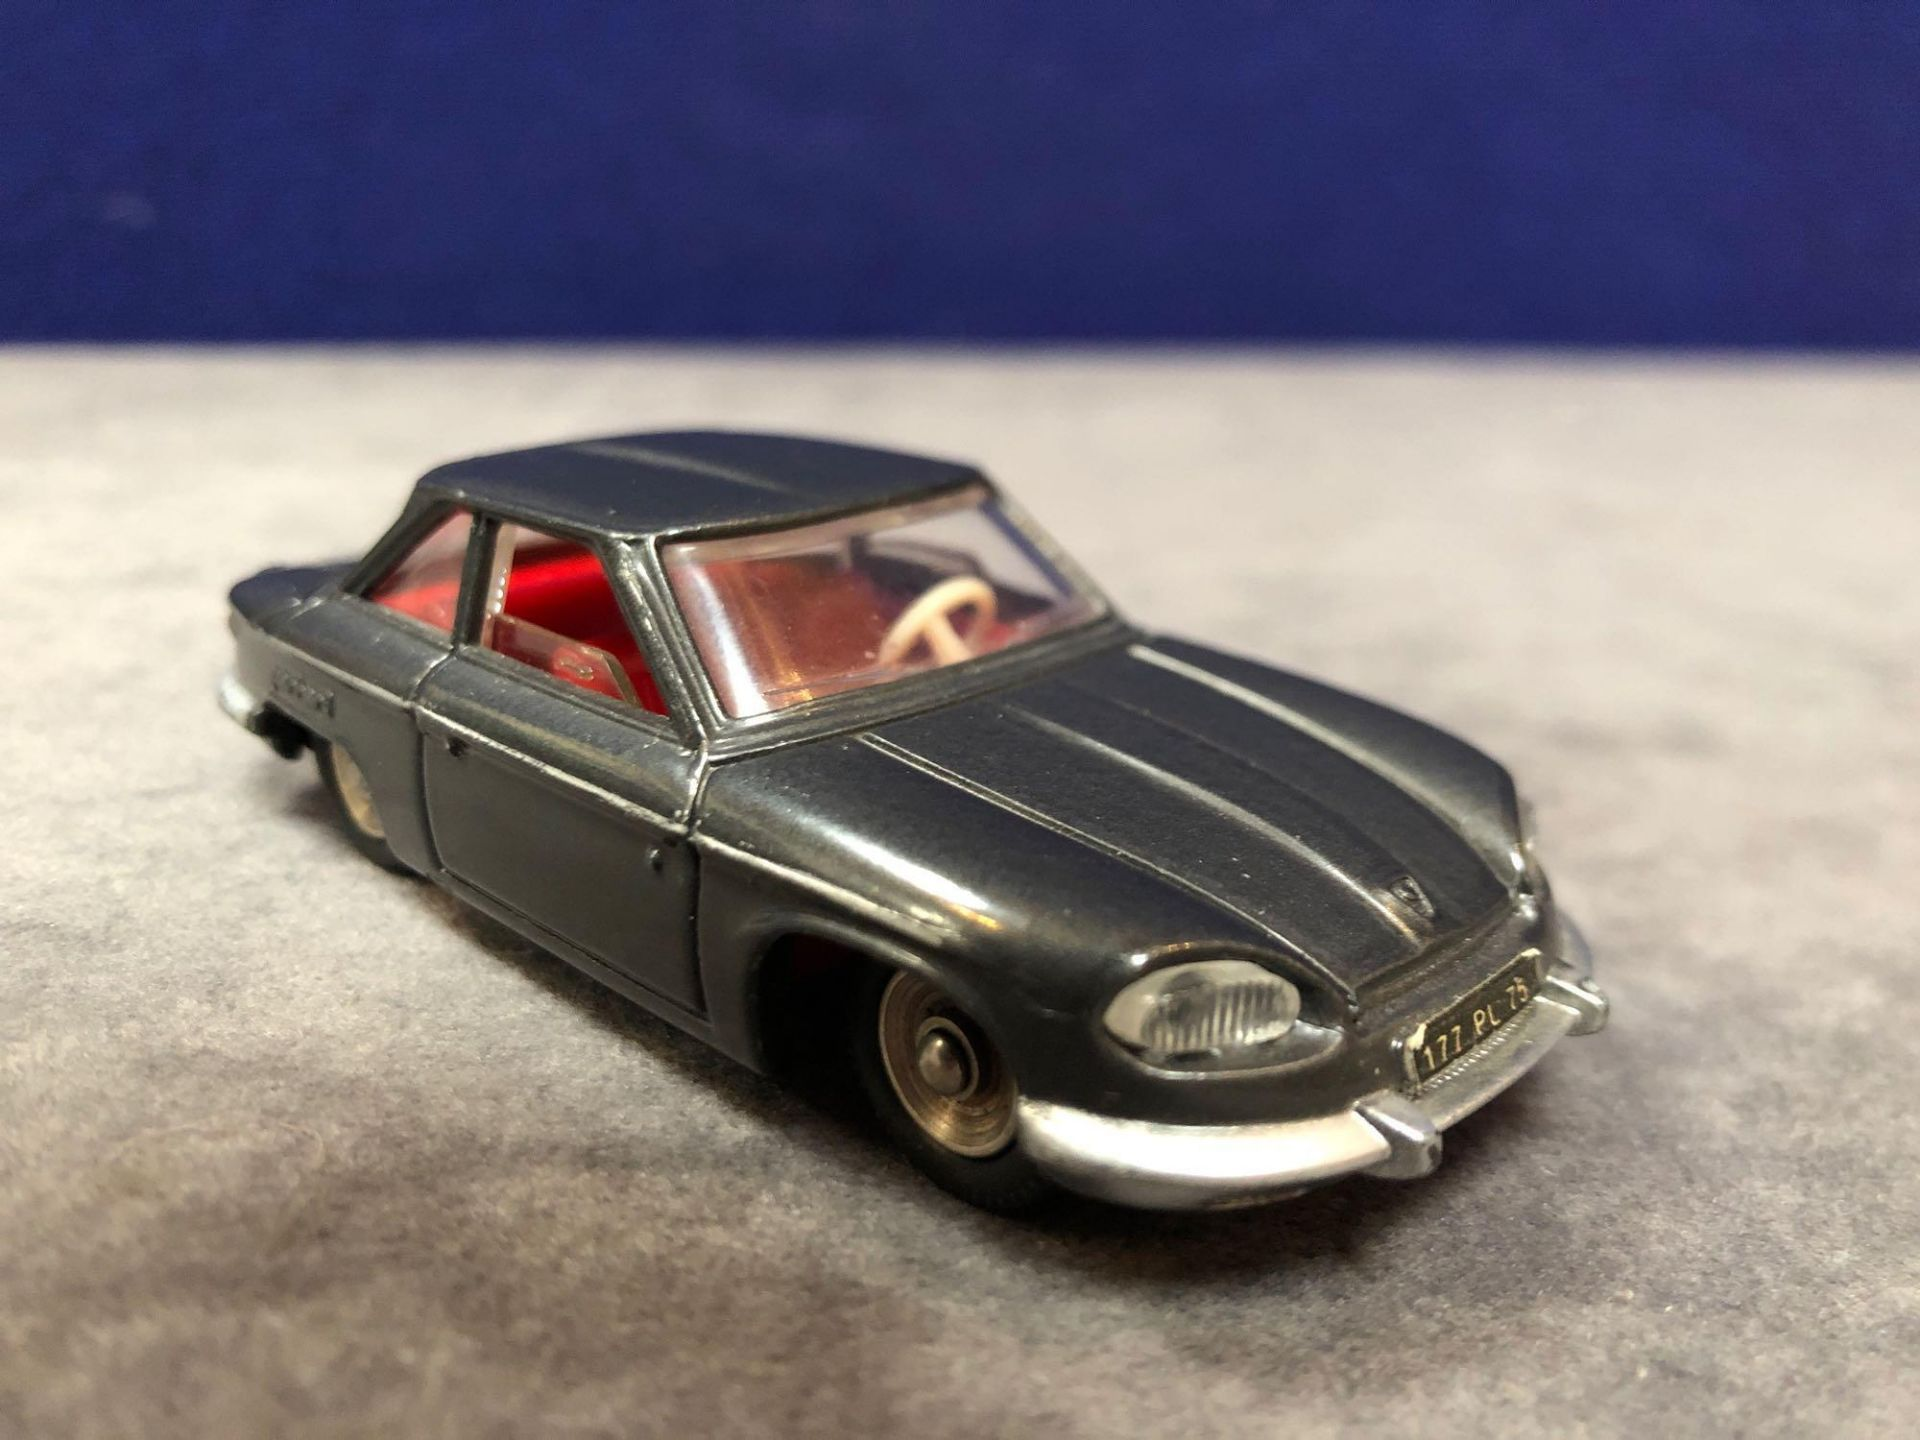 Dinky (France) Diecast #524 Panhard CT24 Coupe In Grey Mint In A Top Quality Repro Box 1964-1966 - Image 2 of 4